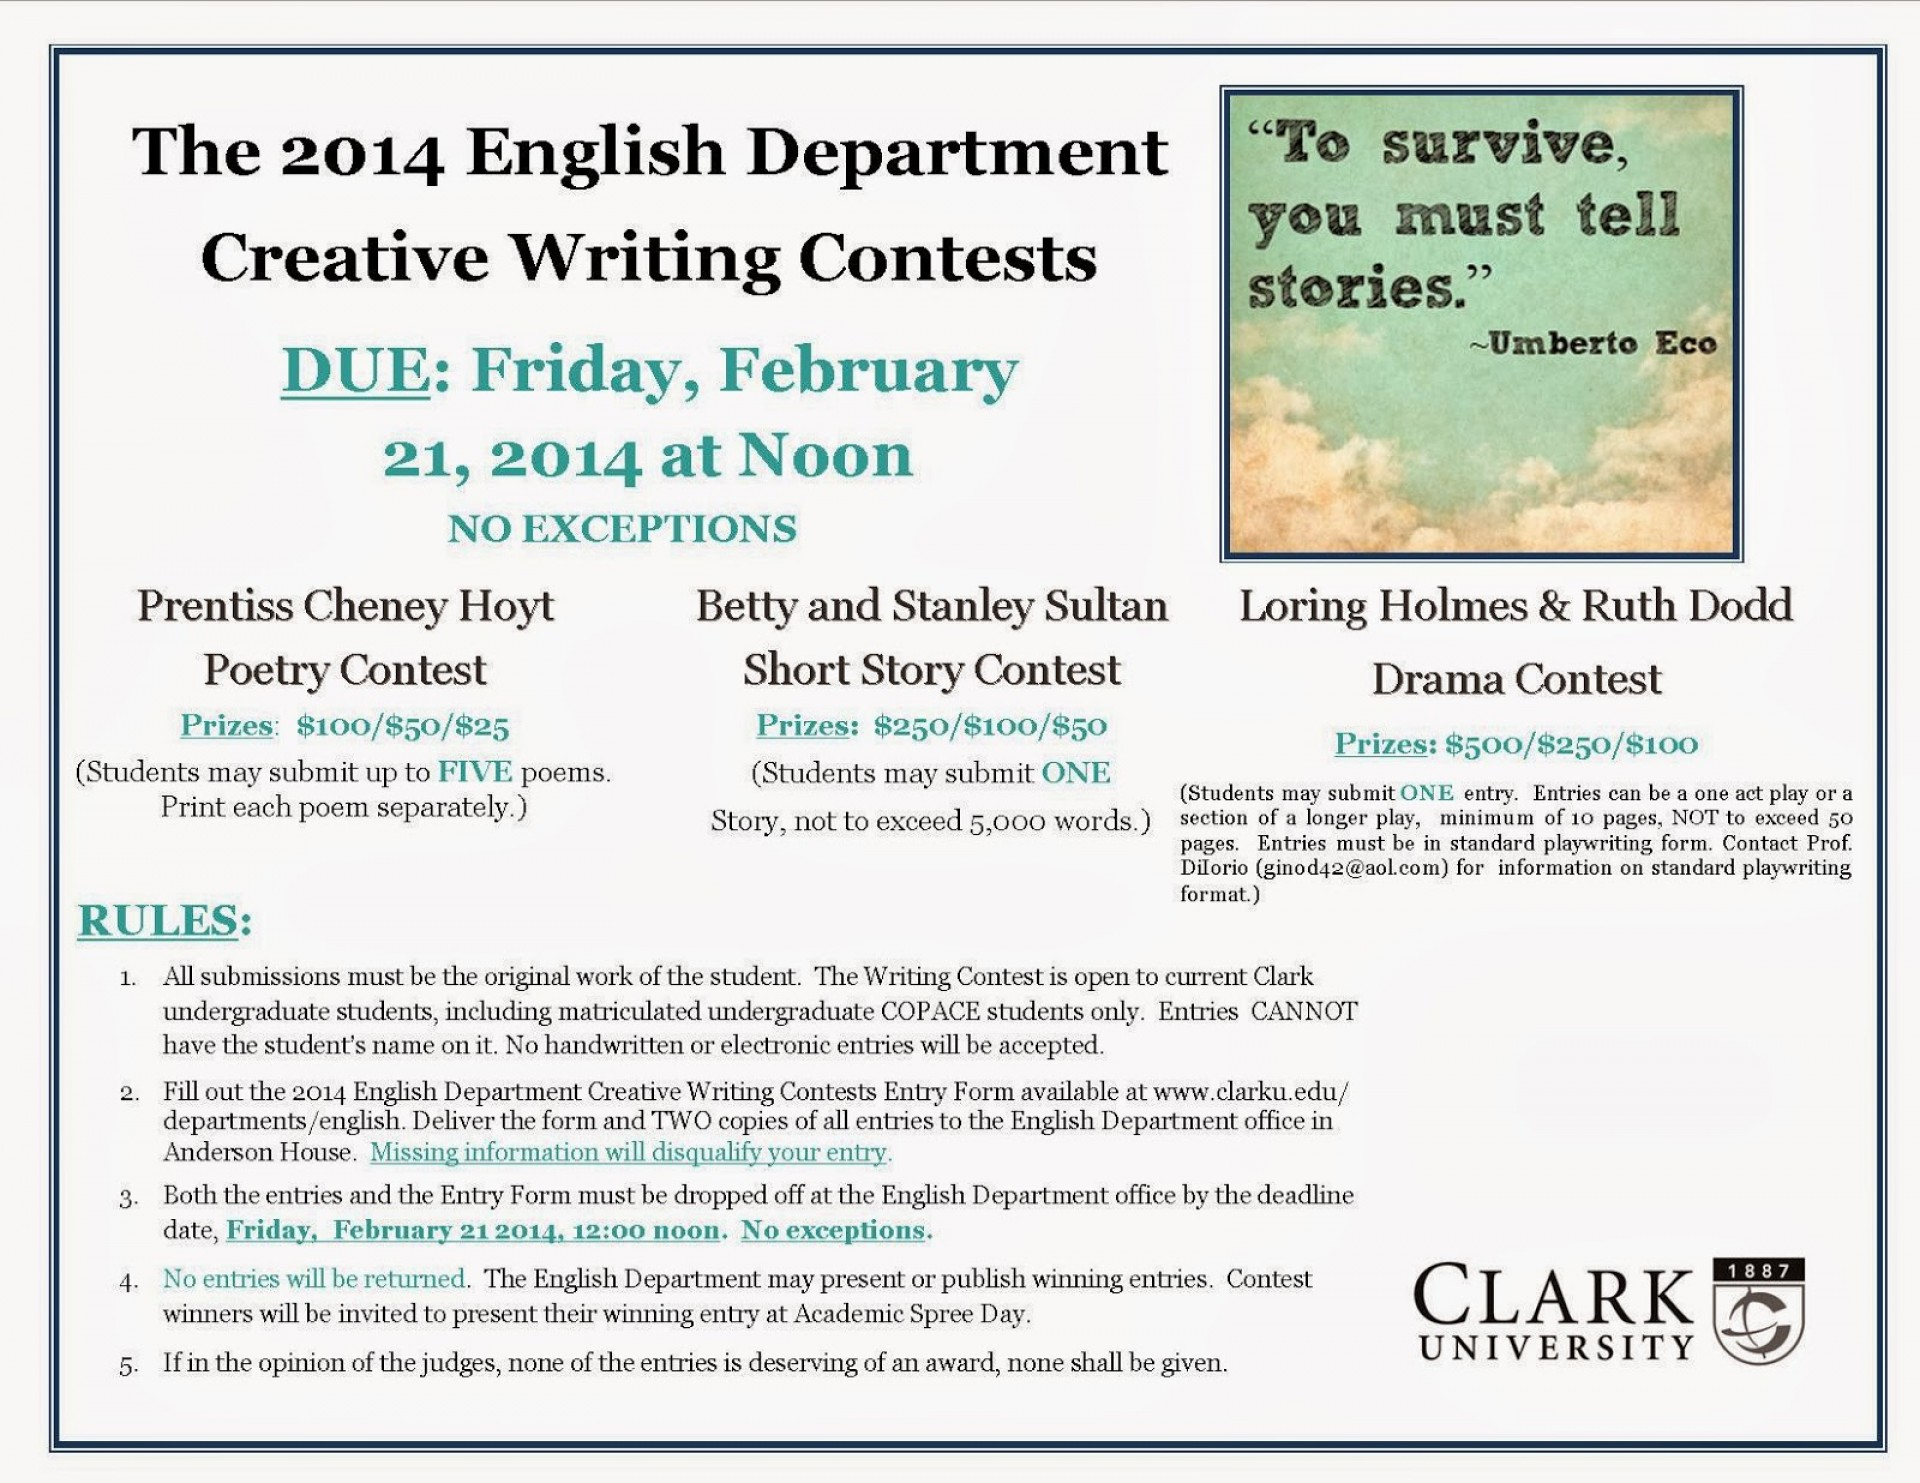 001 Essay Examplecreativewritingcontestposterfinal Contests Imposing 2014 Maryknoll Contest Winners 1920